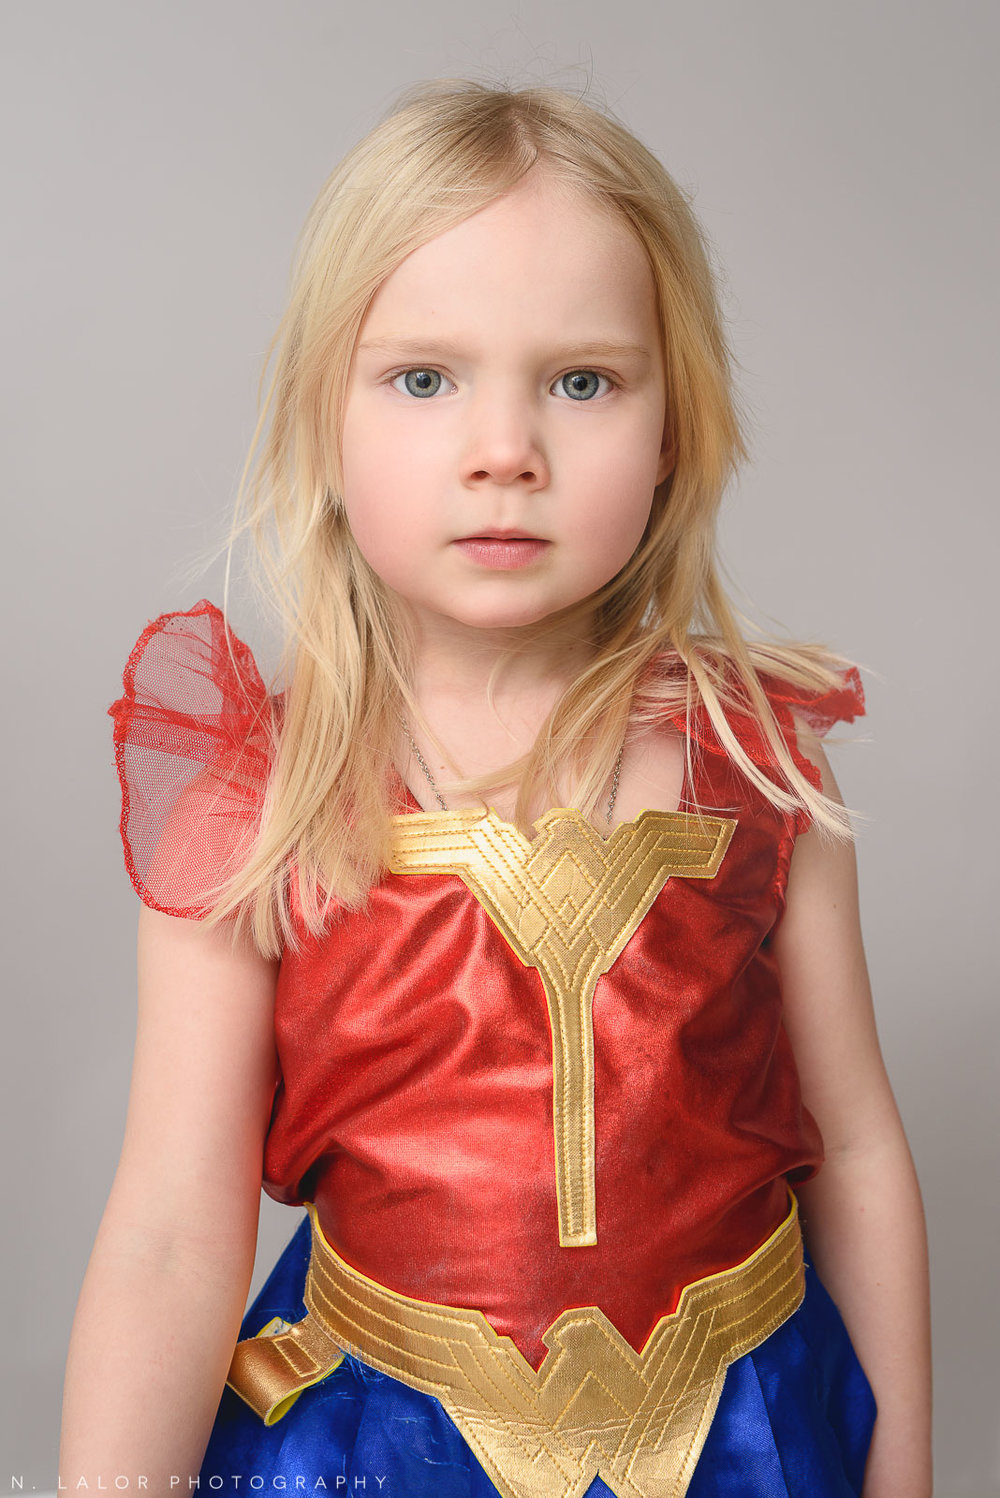 Little girl dressed in a Wonder Woman costume. Studio portrait by N. Lalor Photography in Greenwich, Connecticut.